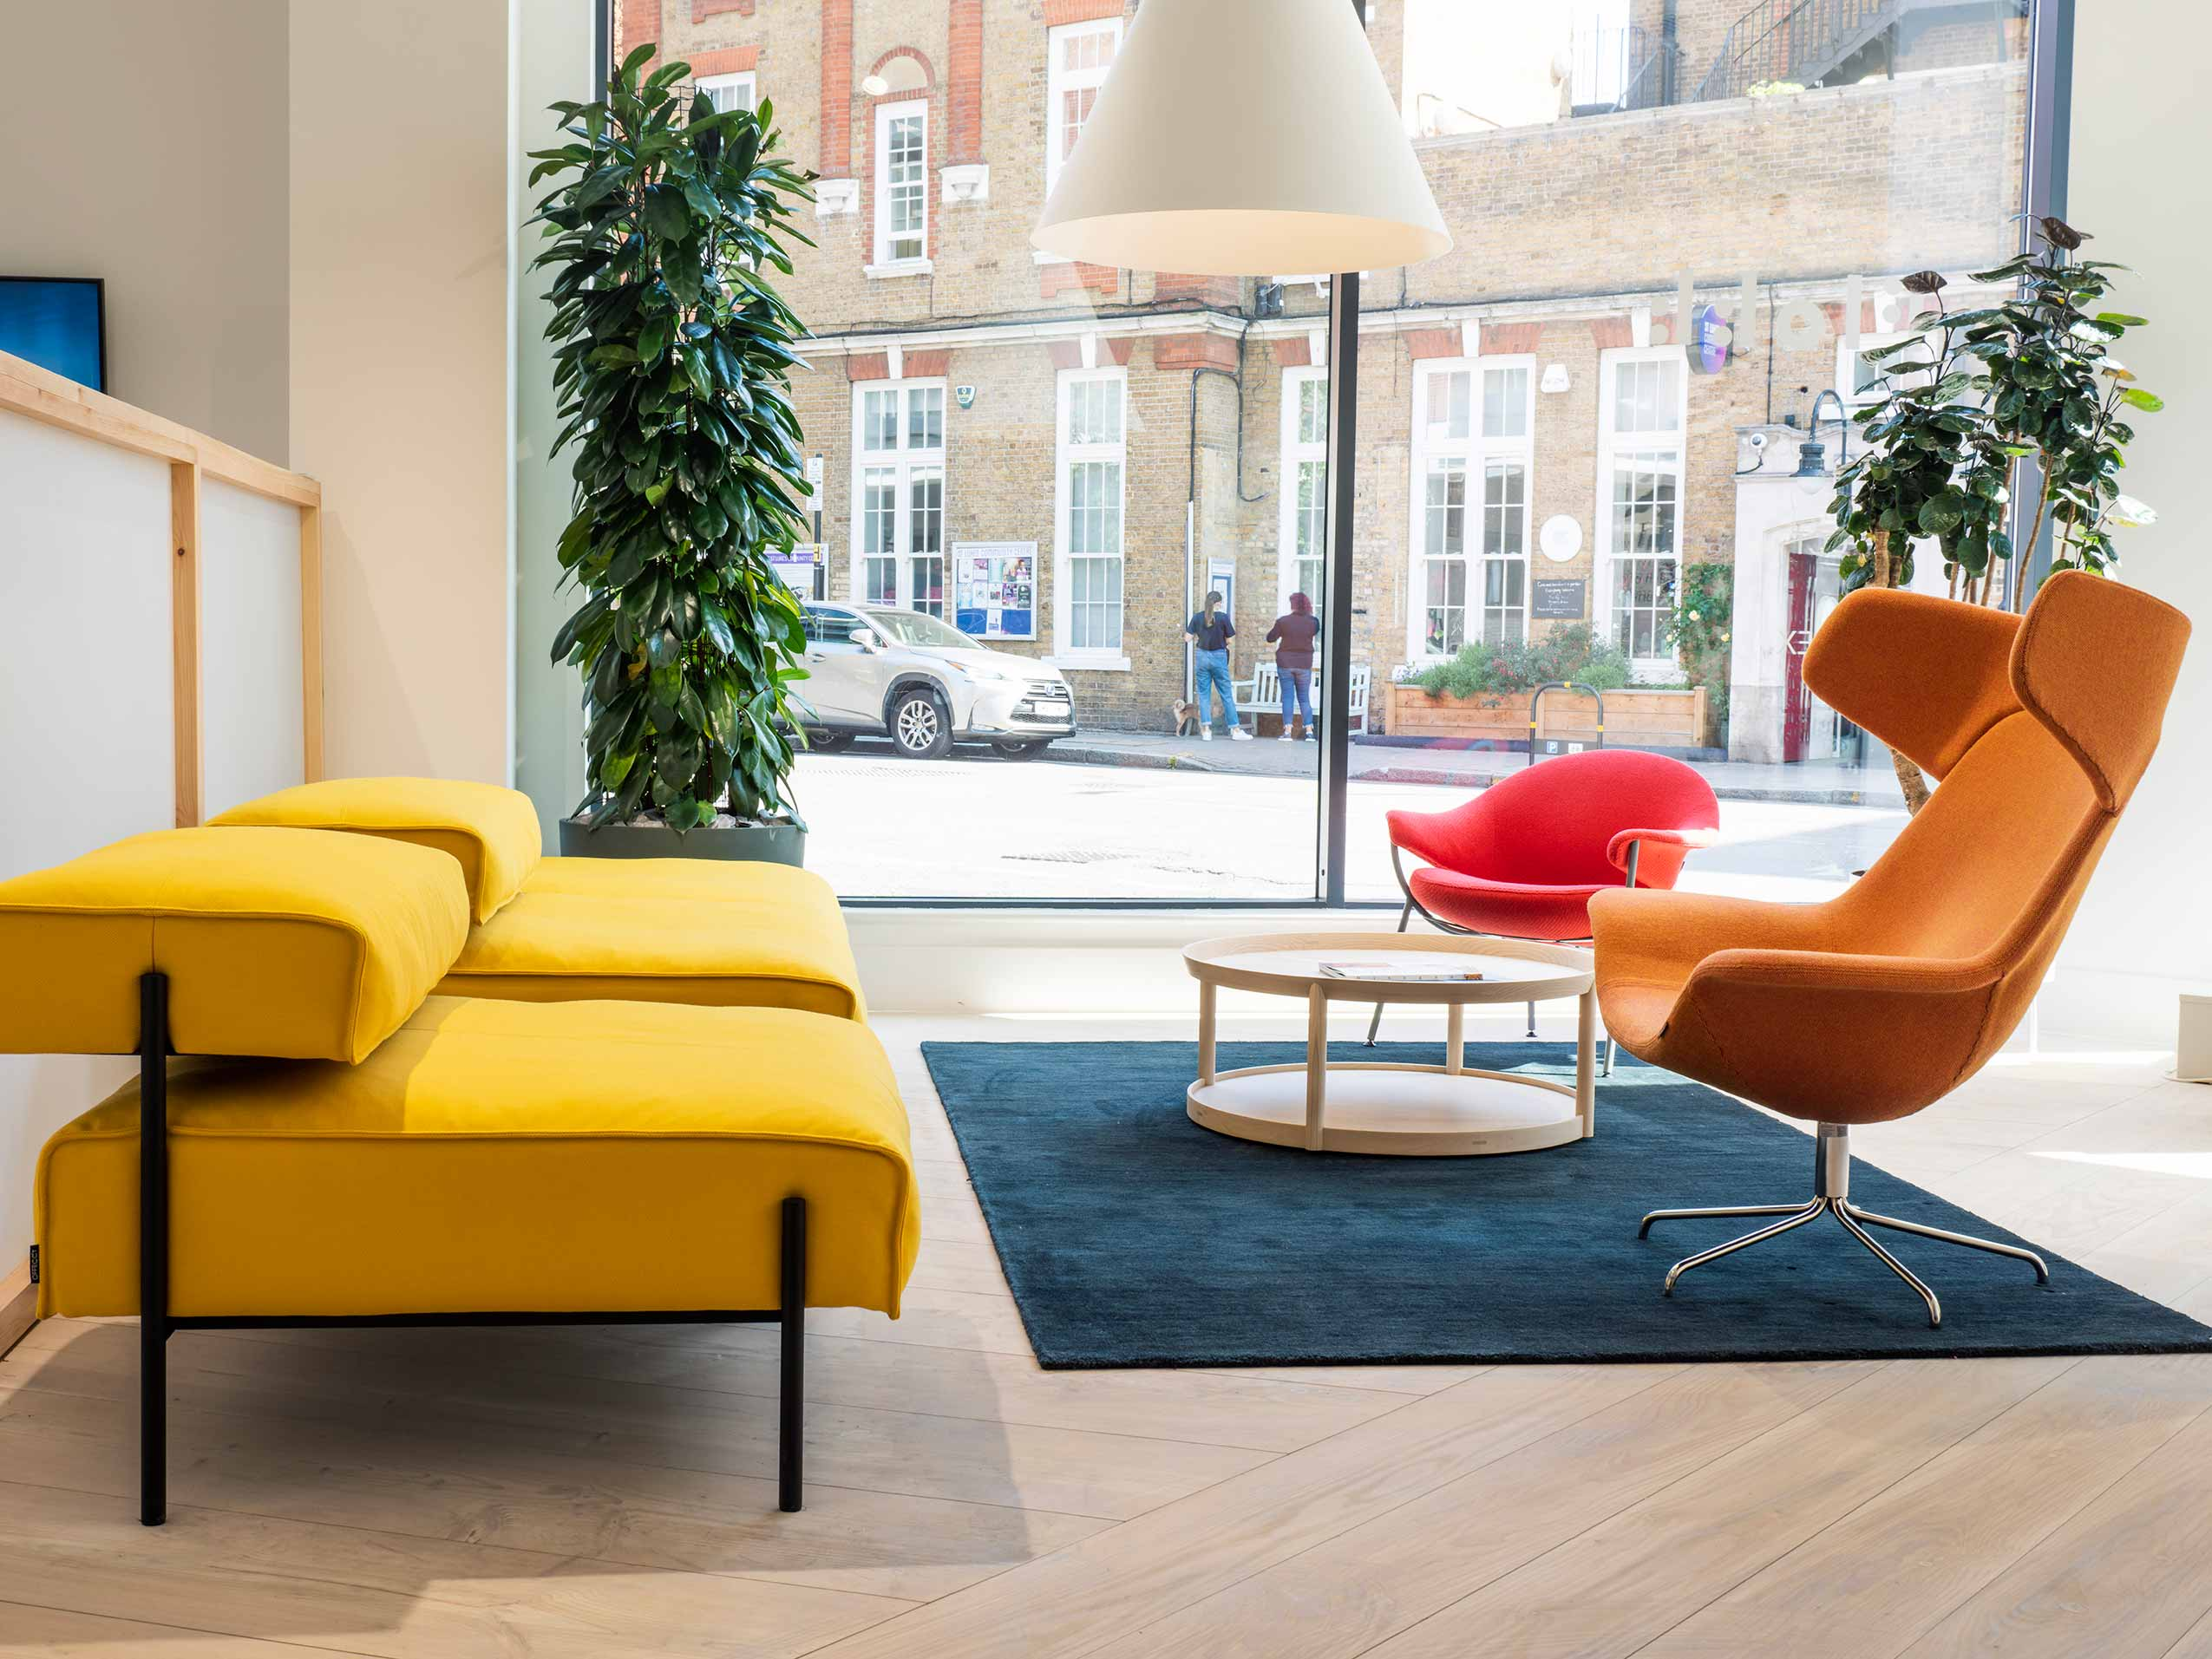 UK Flokk showroom featuring OFfecct yellow sofa, red and orange chairs